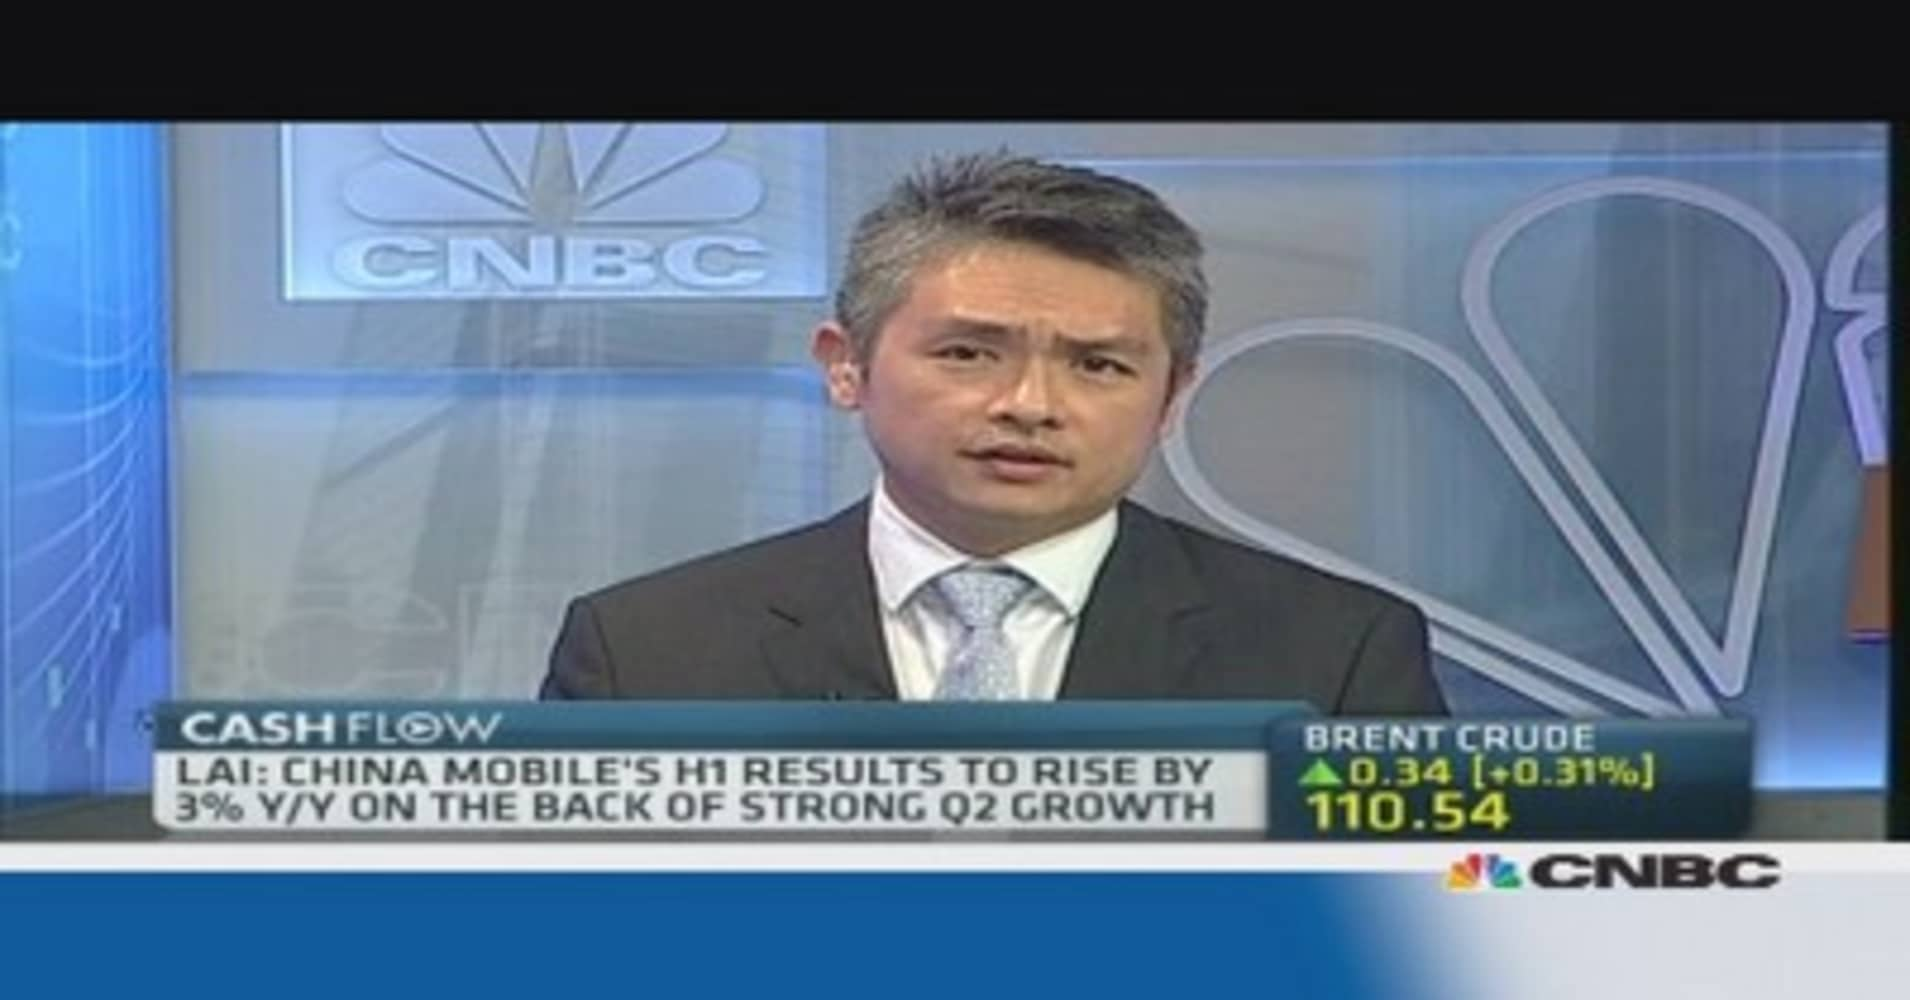 Apple tie-up won't boost China Mobile's stock: Pro